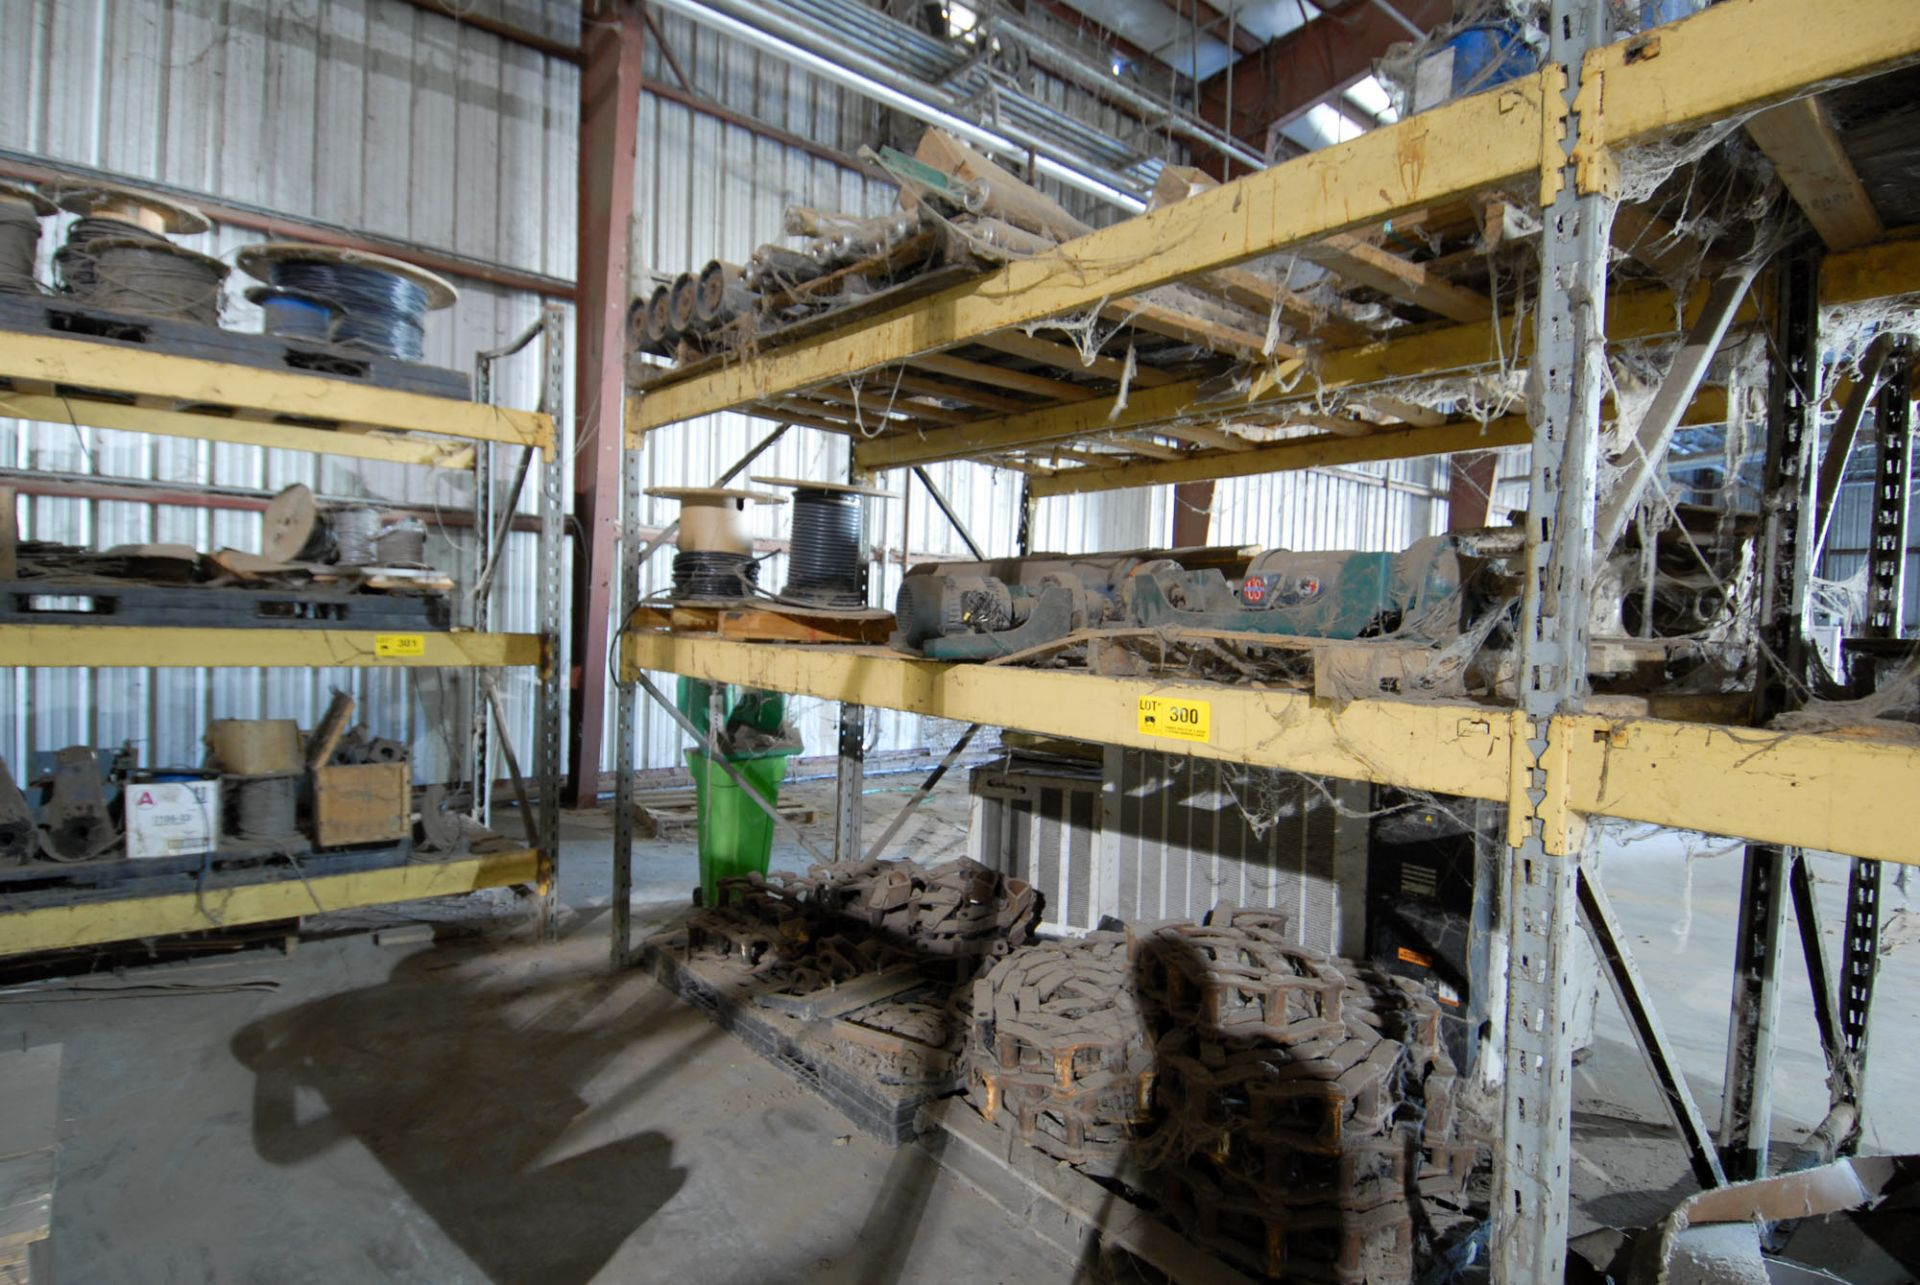 Lot 300 - LOT/ CONTENTS OF RACK (SURPLUS EQUIPMENT)